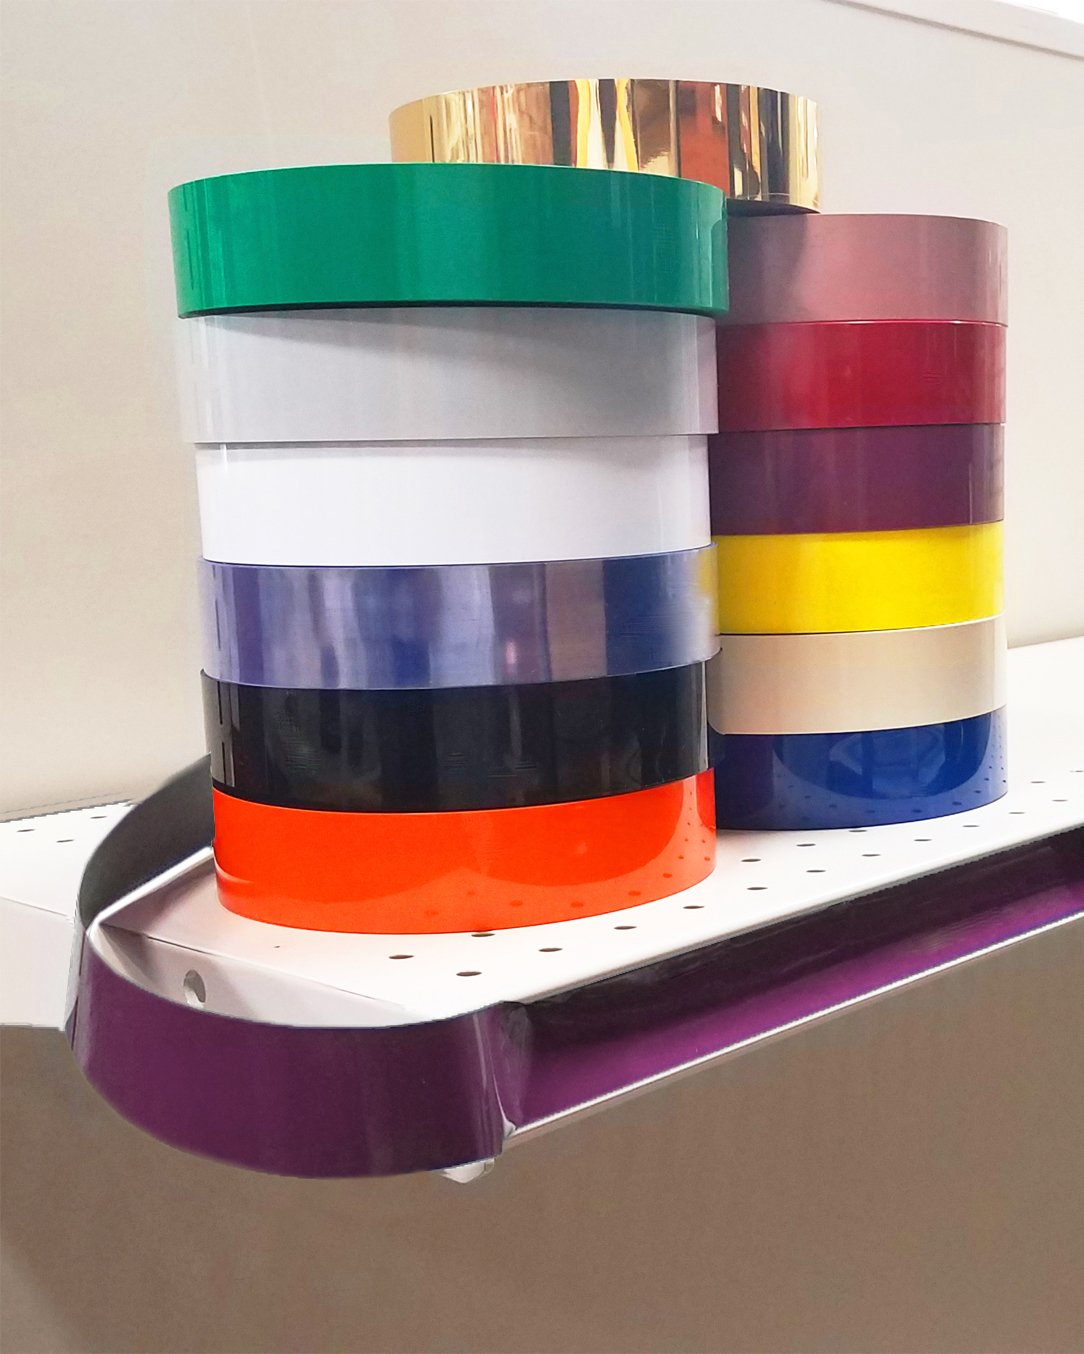 Decorative Gondola Shelving Vinyl Insert for Ticket Channel 130 FT. x 1.25 in. - 5 Pack, Wineberry